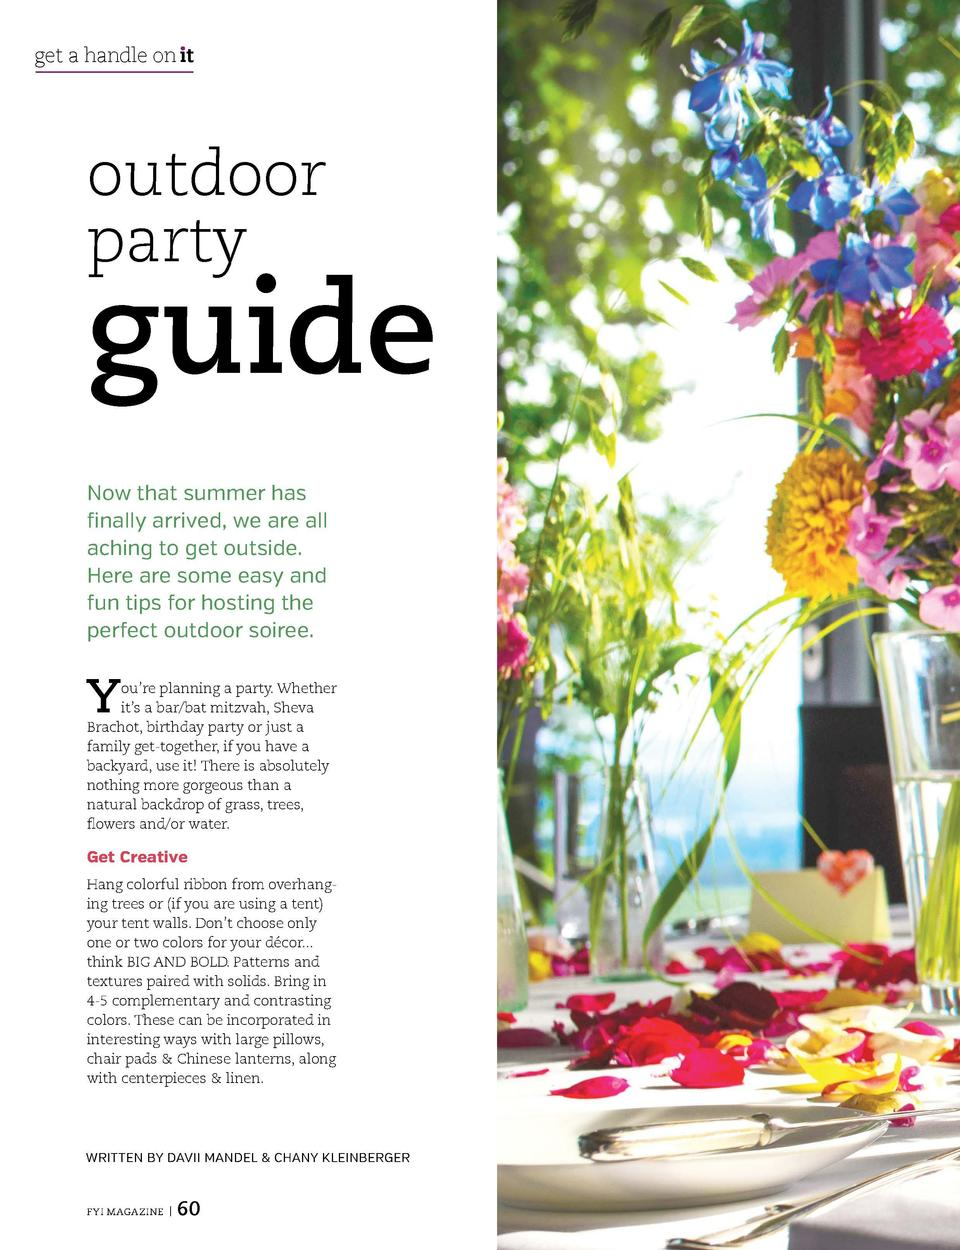 get a handle on   t  outdoor party  guide Now that summer has finally arrived, we are all aching to get outside. Here are ...